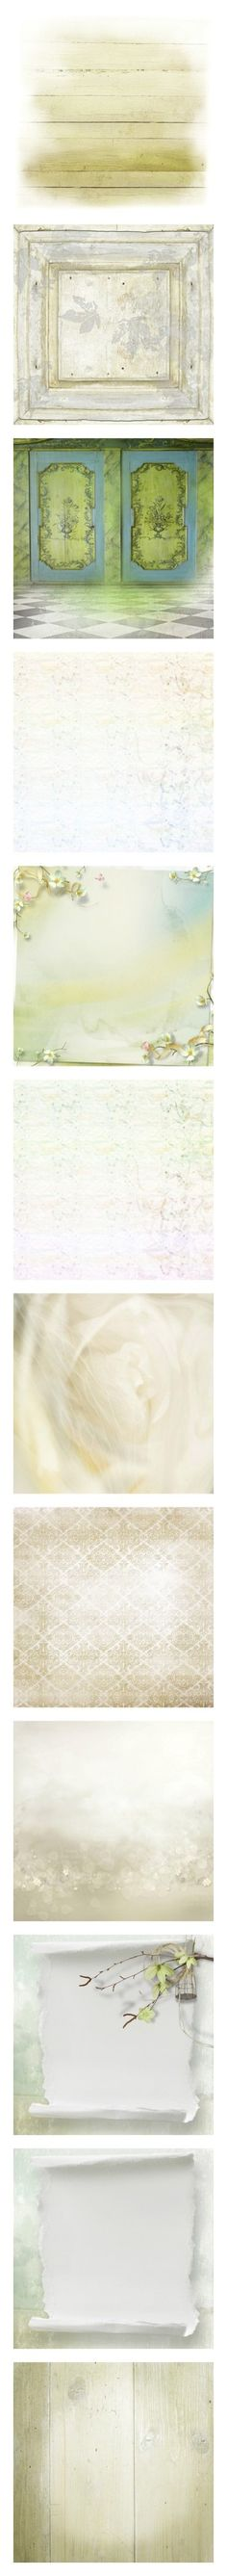 BACKGROUND ... II, YANDEX by deneve on Polyvore featuring backgrounds, effects, decor, fillers, embellishments, frames, rooms, doors, green and art